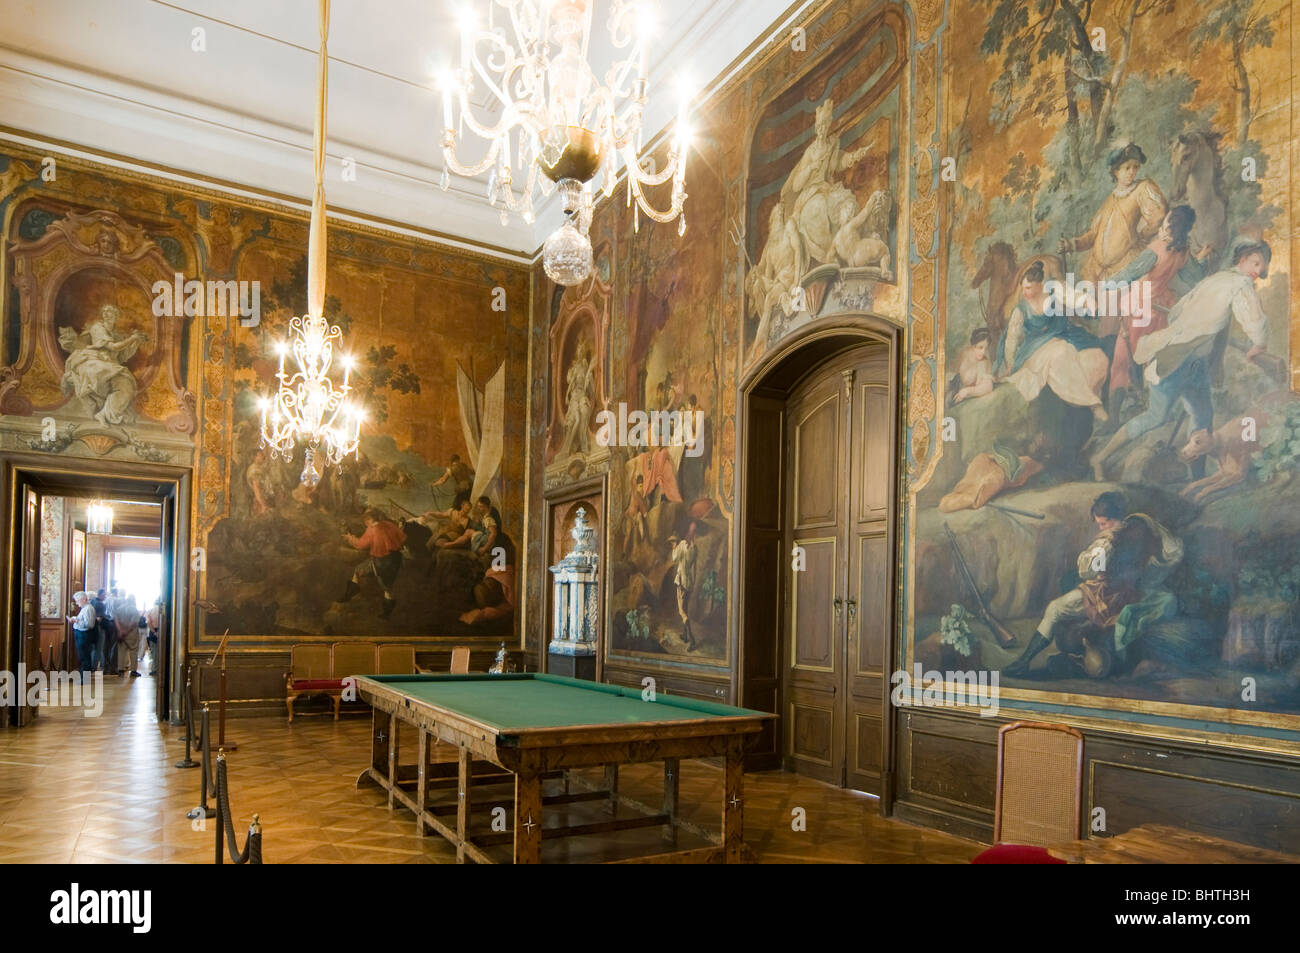 castle moritzburg, interior, billard room with leather wallpaper